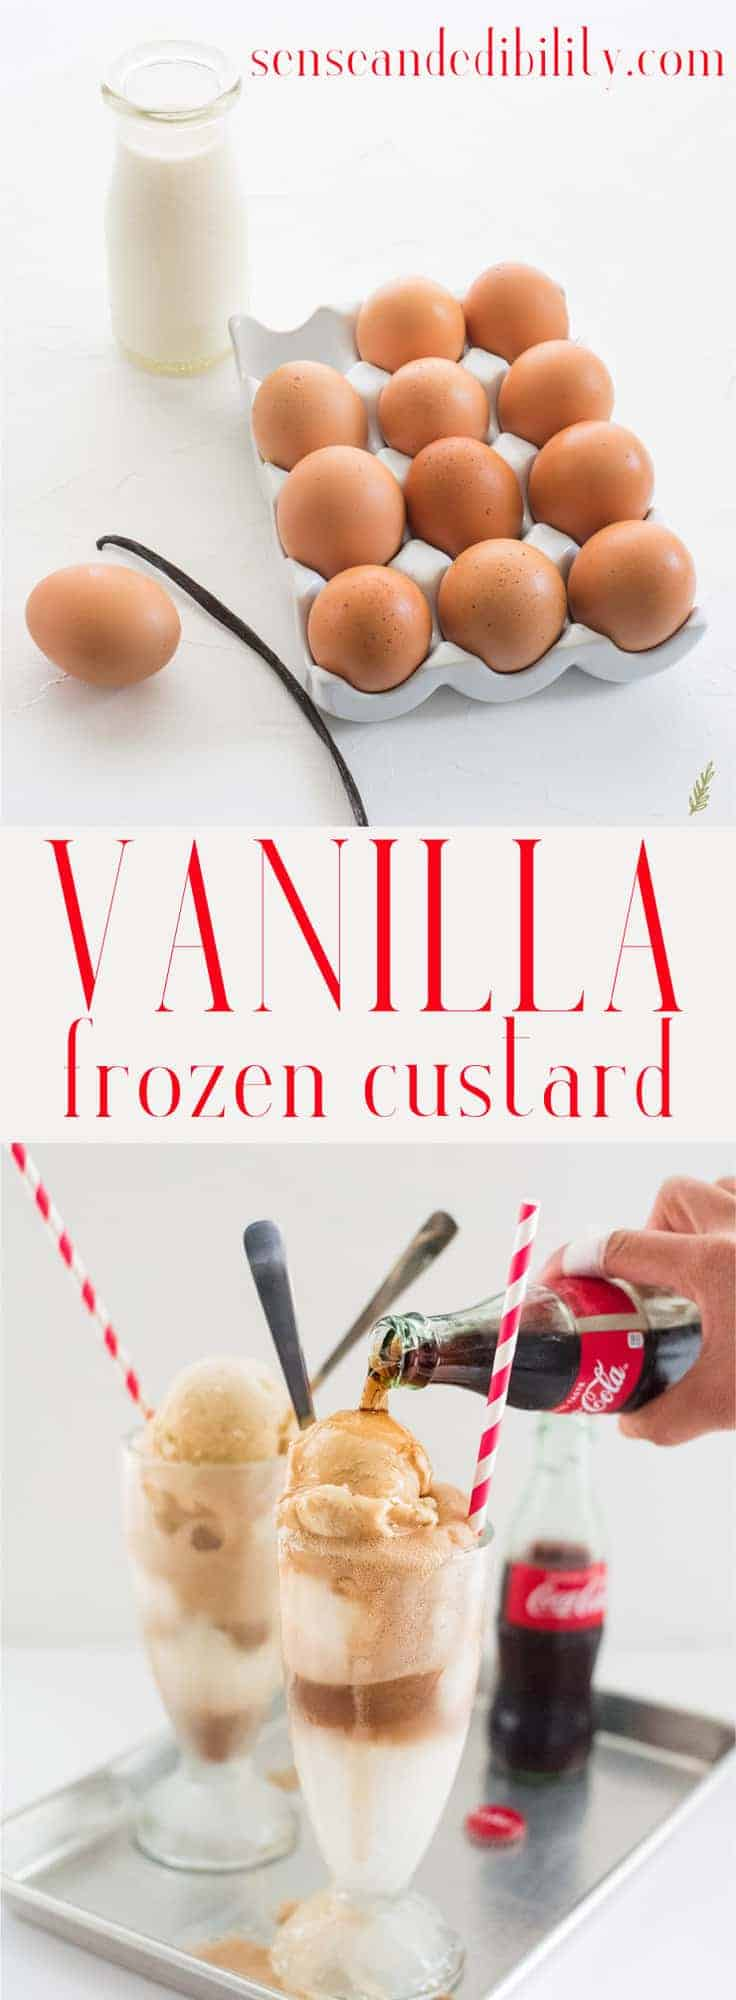 Vanilla Frozen Custard needs to be in your dessert repertoire. Easy vanilla custard is slow-churned for the creamiest ice cream you've ever tasted. #frozencustard #icecream #vanillaicecream #dessert #sweets #frozendessert #easy #icecreamfloats #cokefloats #rootbeerfloats #alamode #icecreamsundaes #bananasplit #browniesundae #piealamode #cobbler via @ediblesense